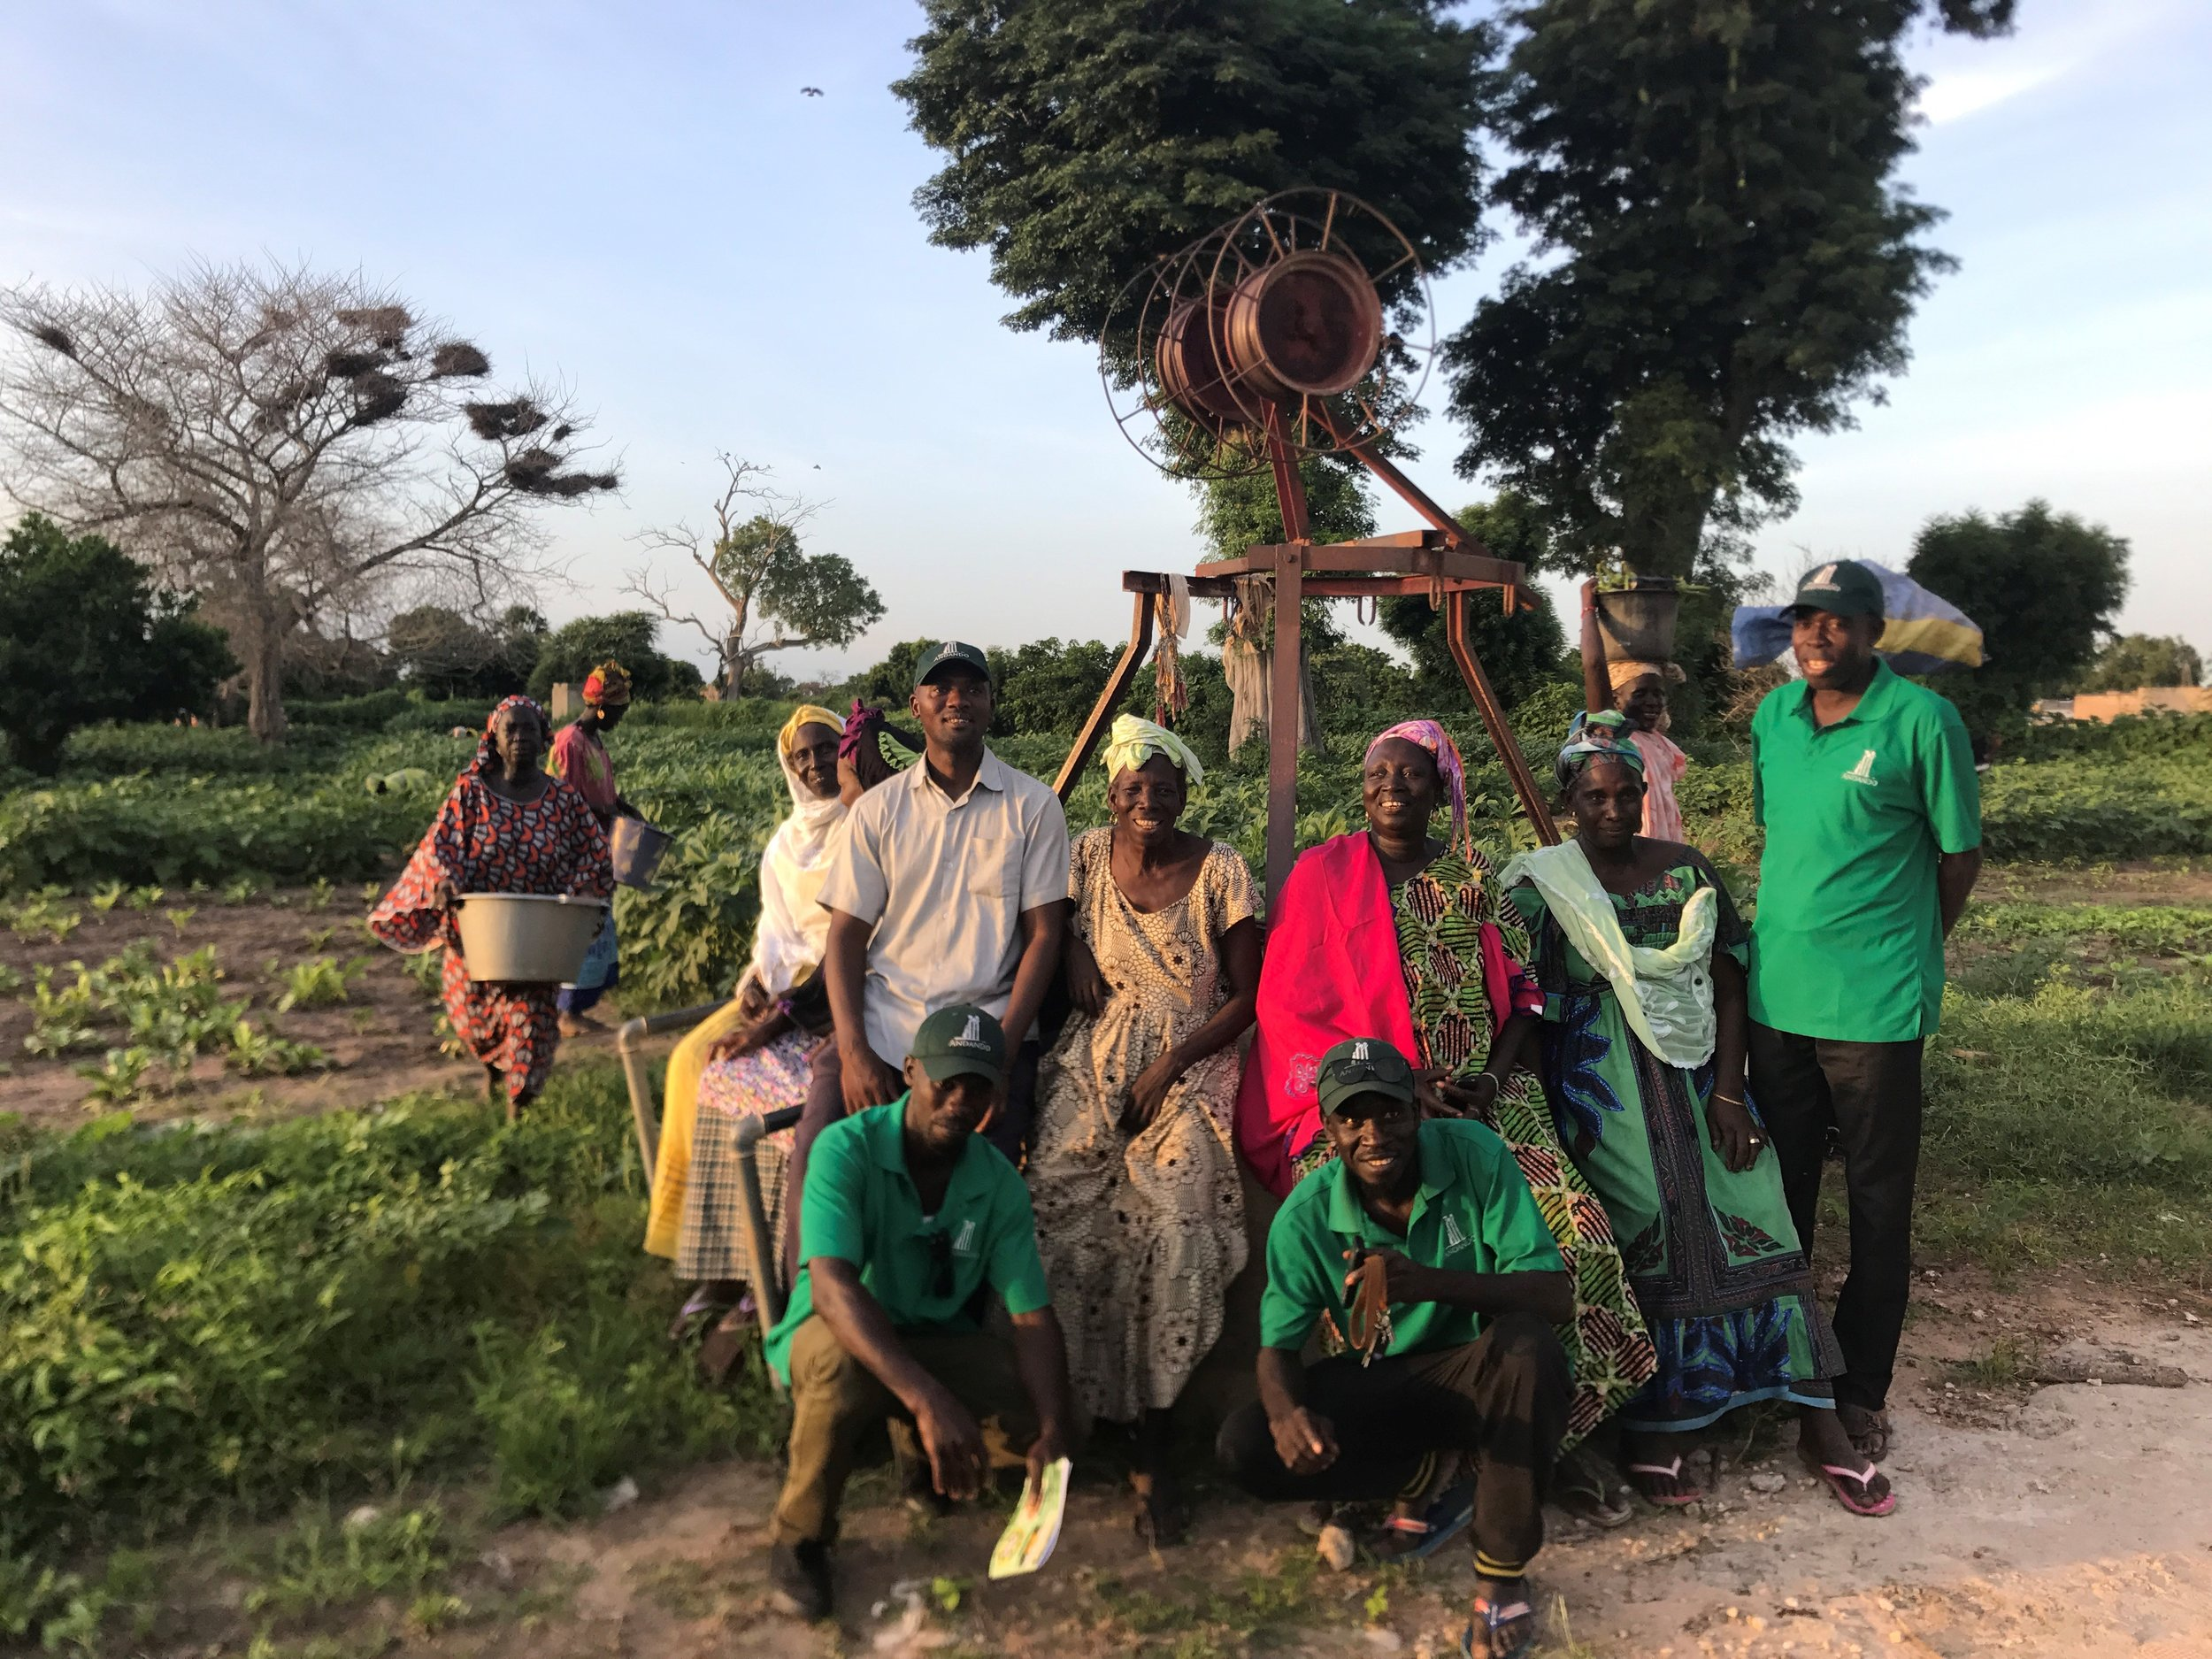 Andando staff hanging out with the women at Kouthieye Garden.